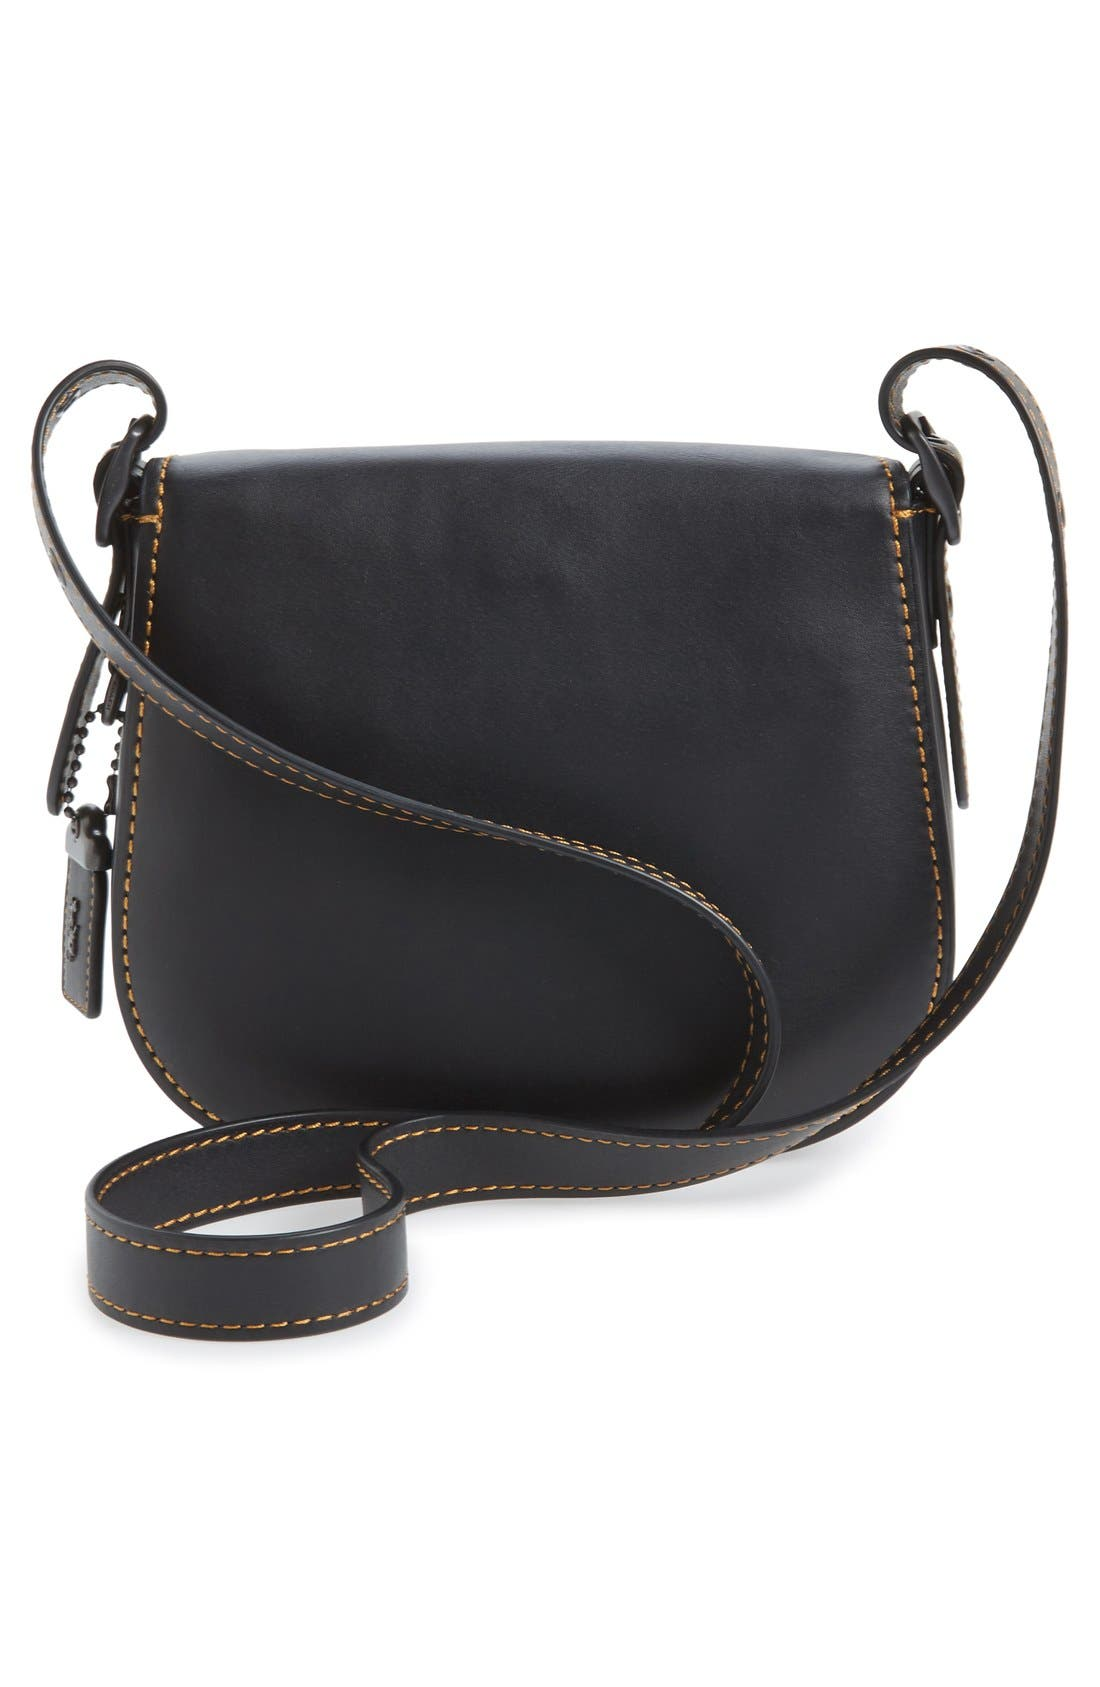 '23' Leather Saddle Bag,                             Alternate thumbnail 3, color,                             001